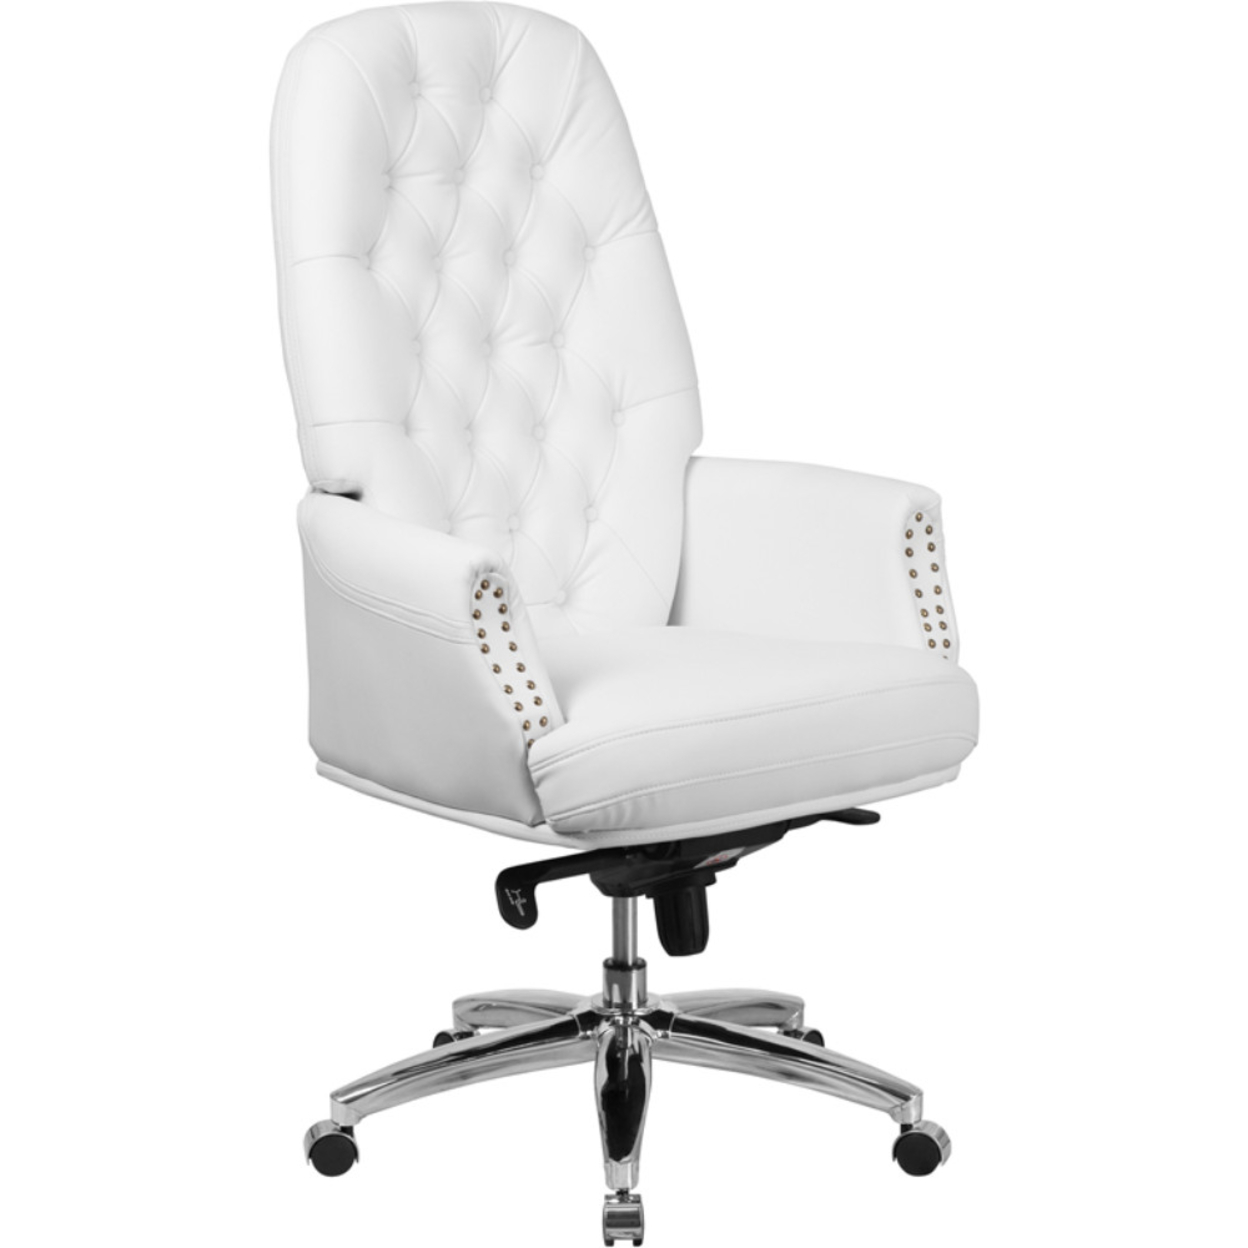 High Back Traditional Leather Multifunction Executive Swivel Chair,White 5a17f4352a00e436b8781c81